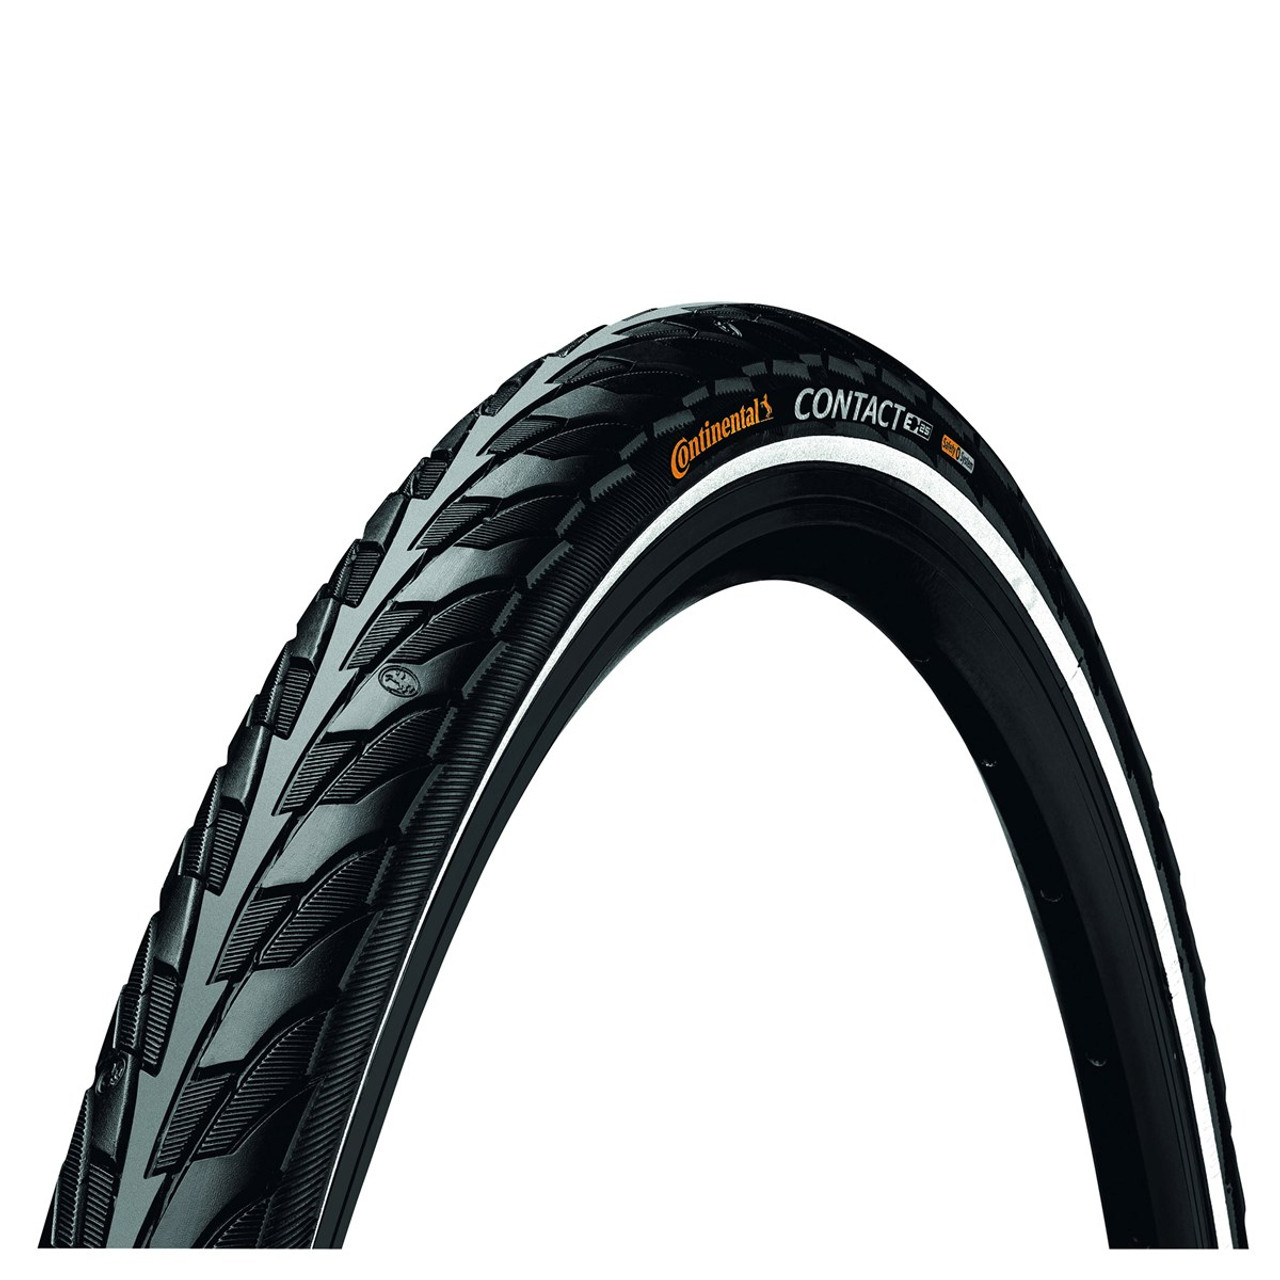 Continental Contact Wired Tyre in Black